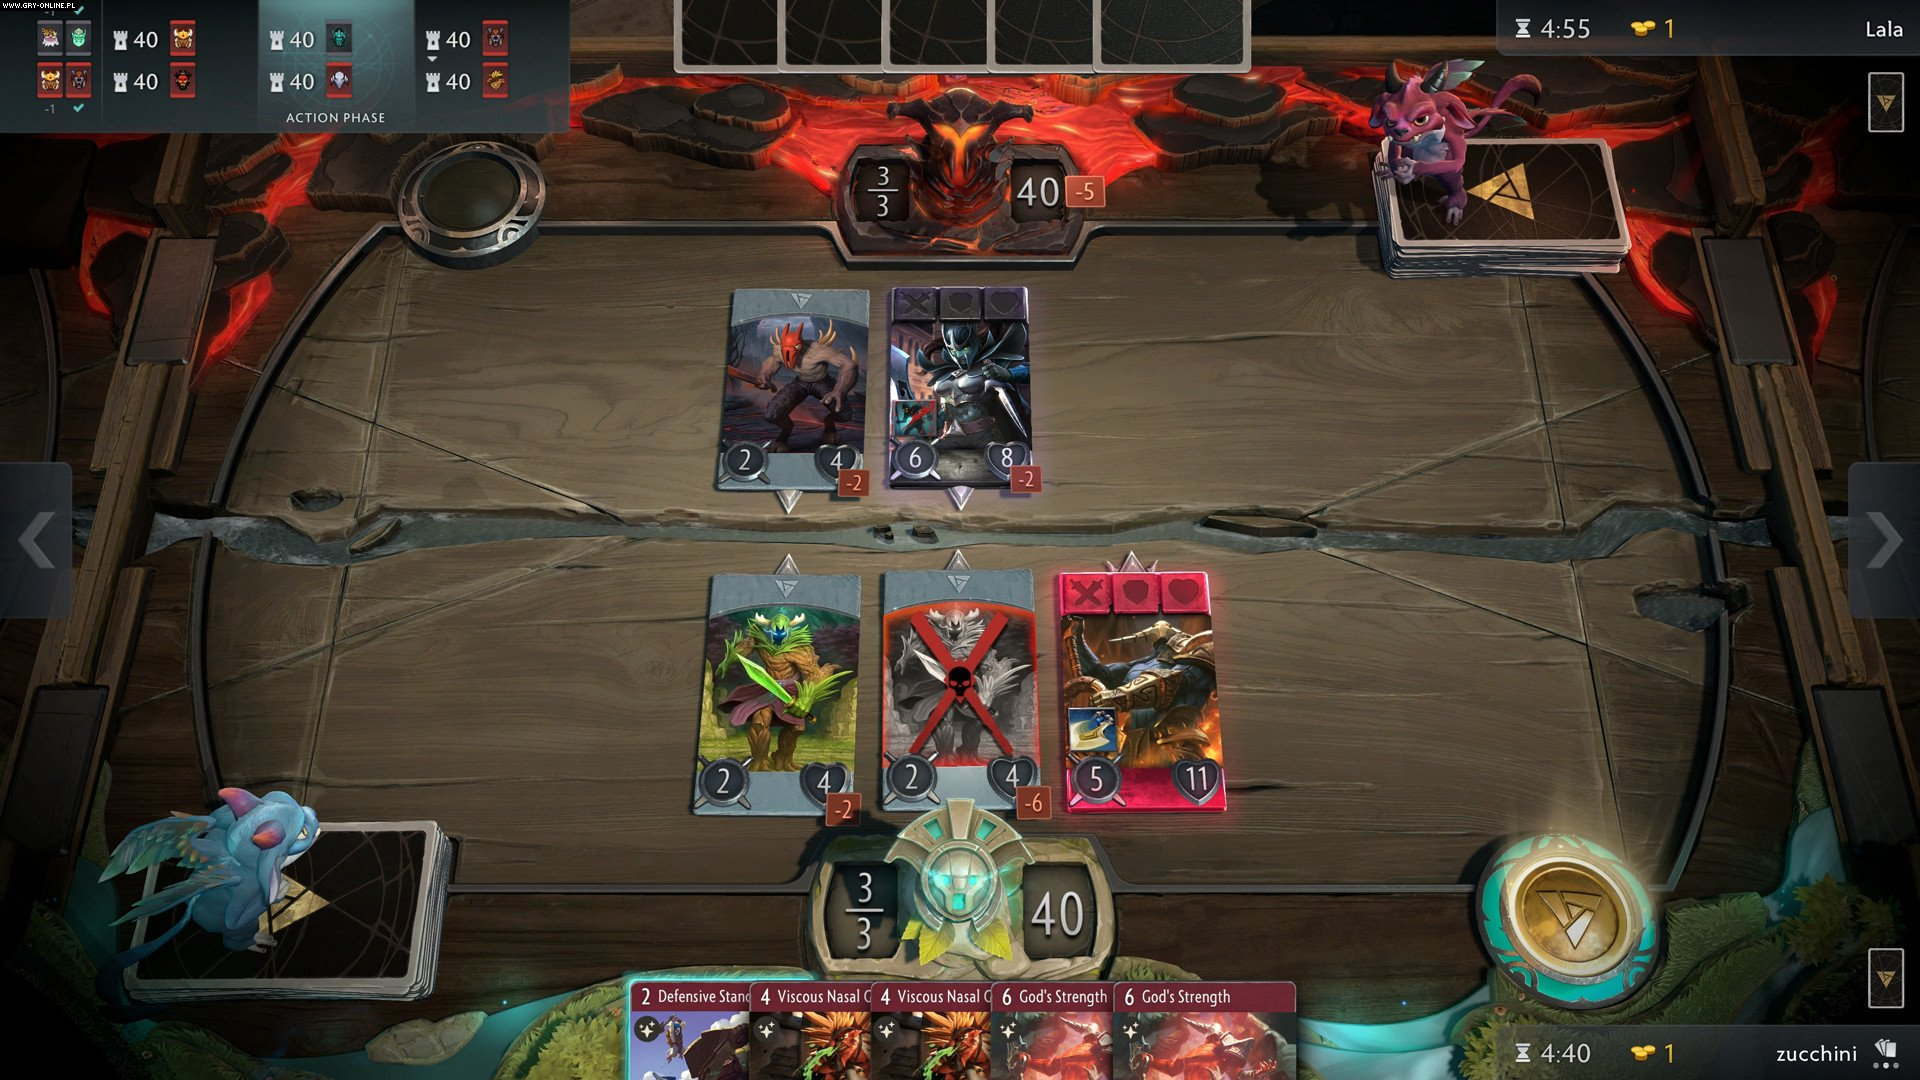 Artifact PC, AND, iOS Games Image 5/9, Valve Corporation